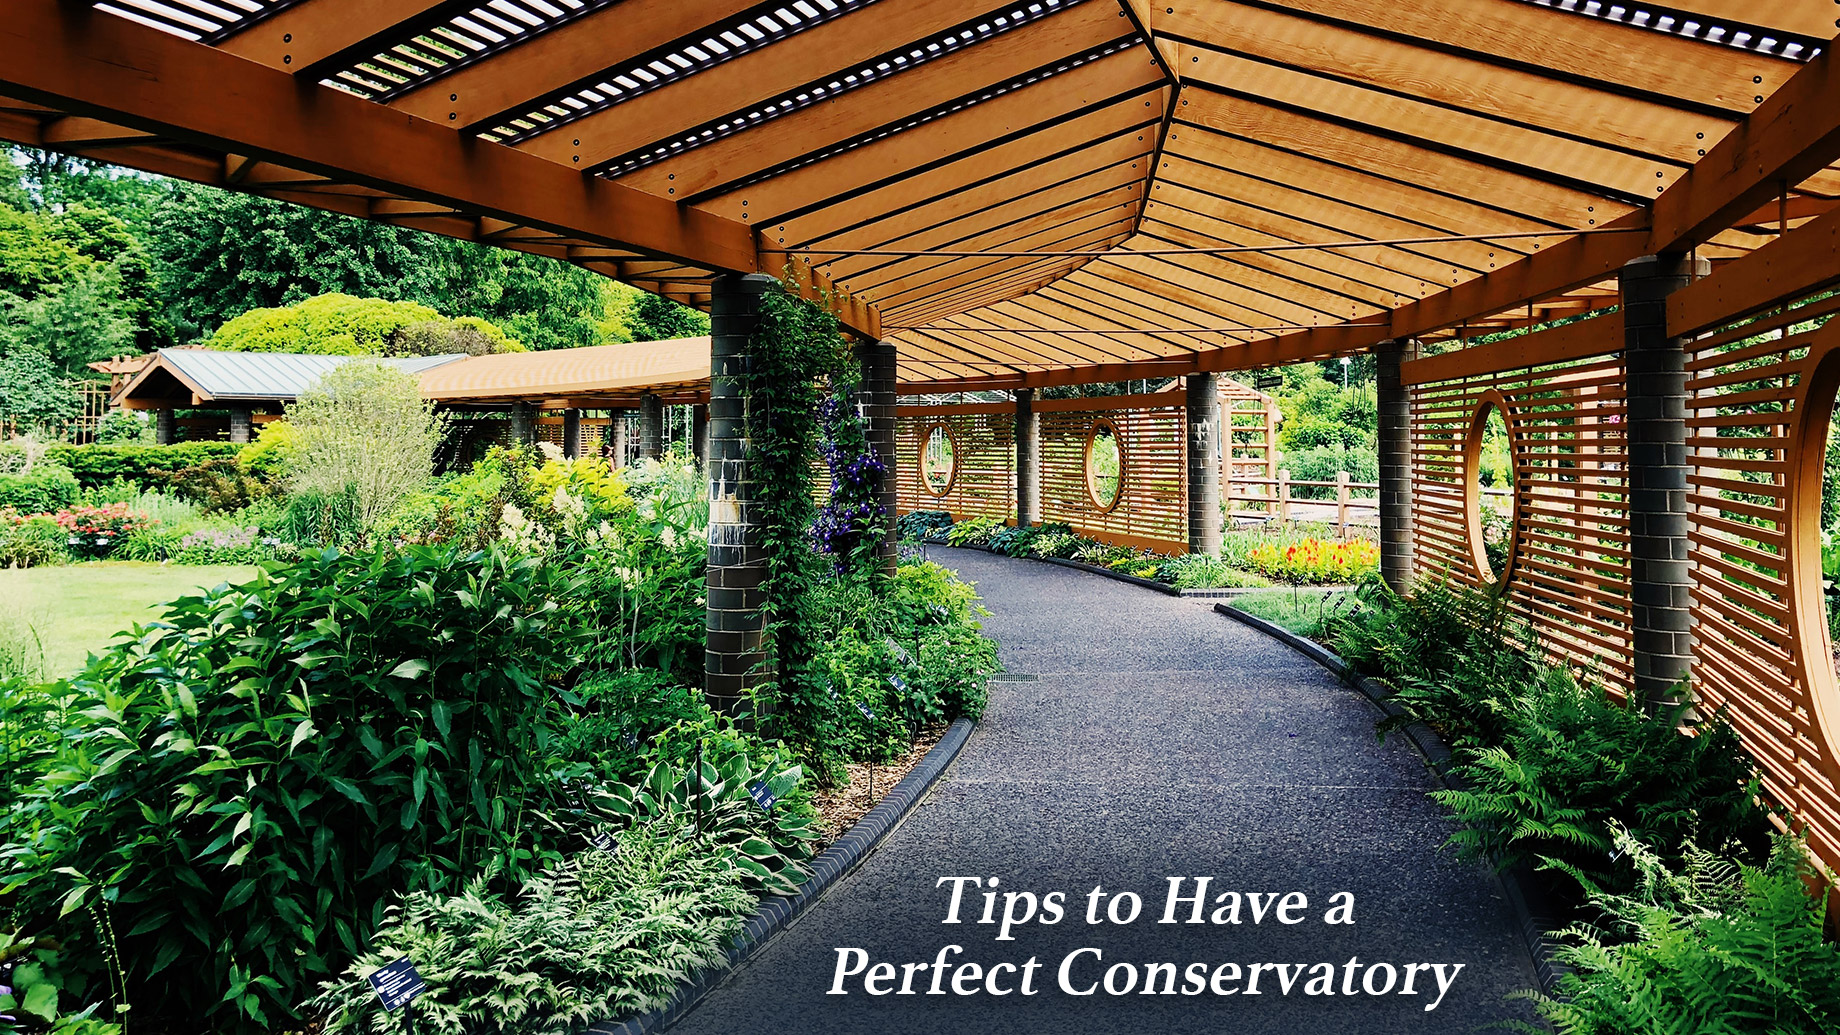 Tips to Have a Perfect Conservatory